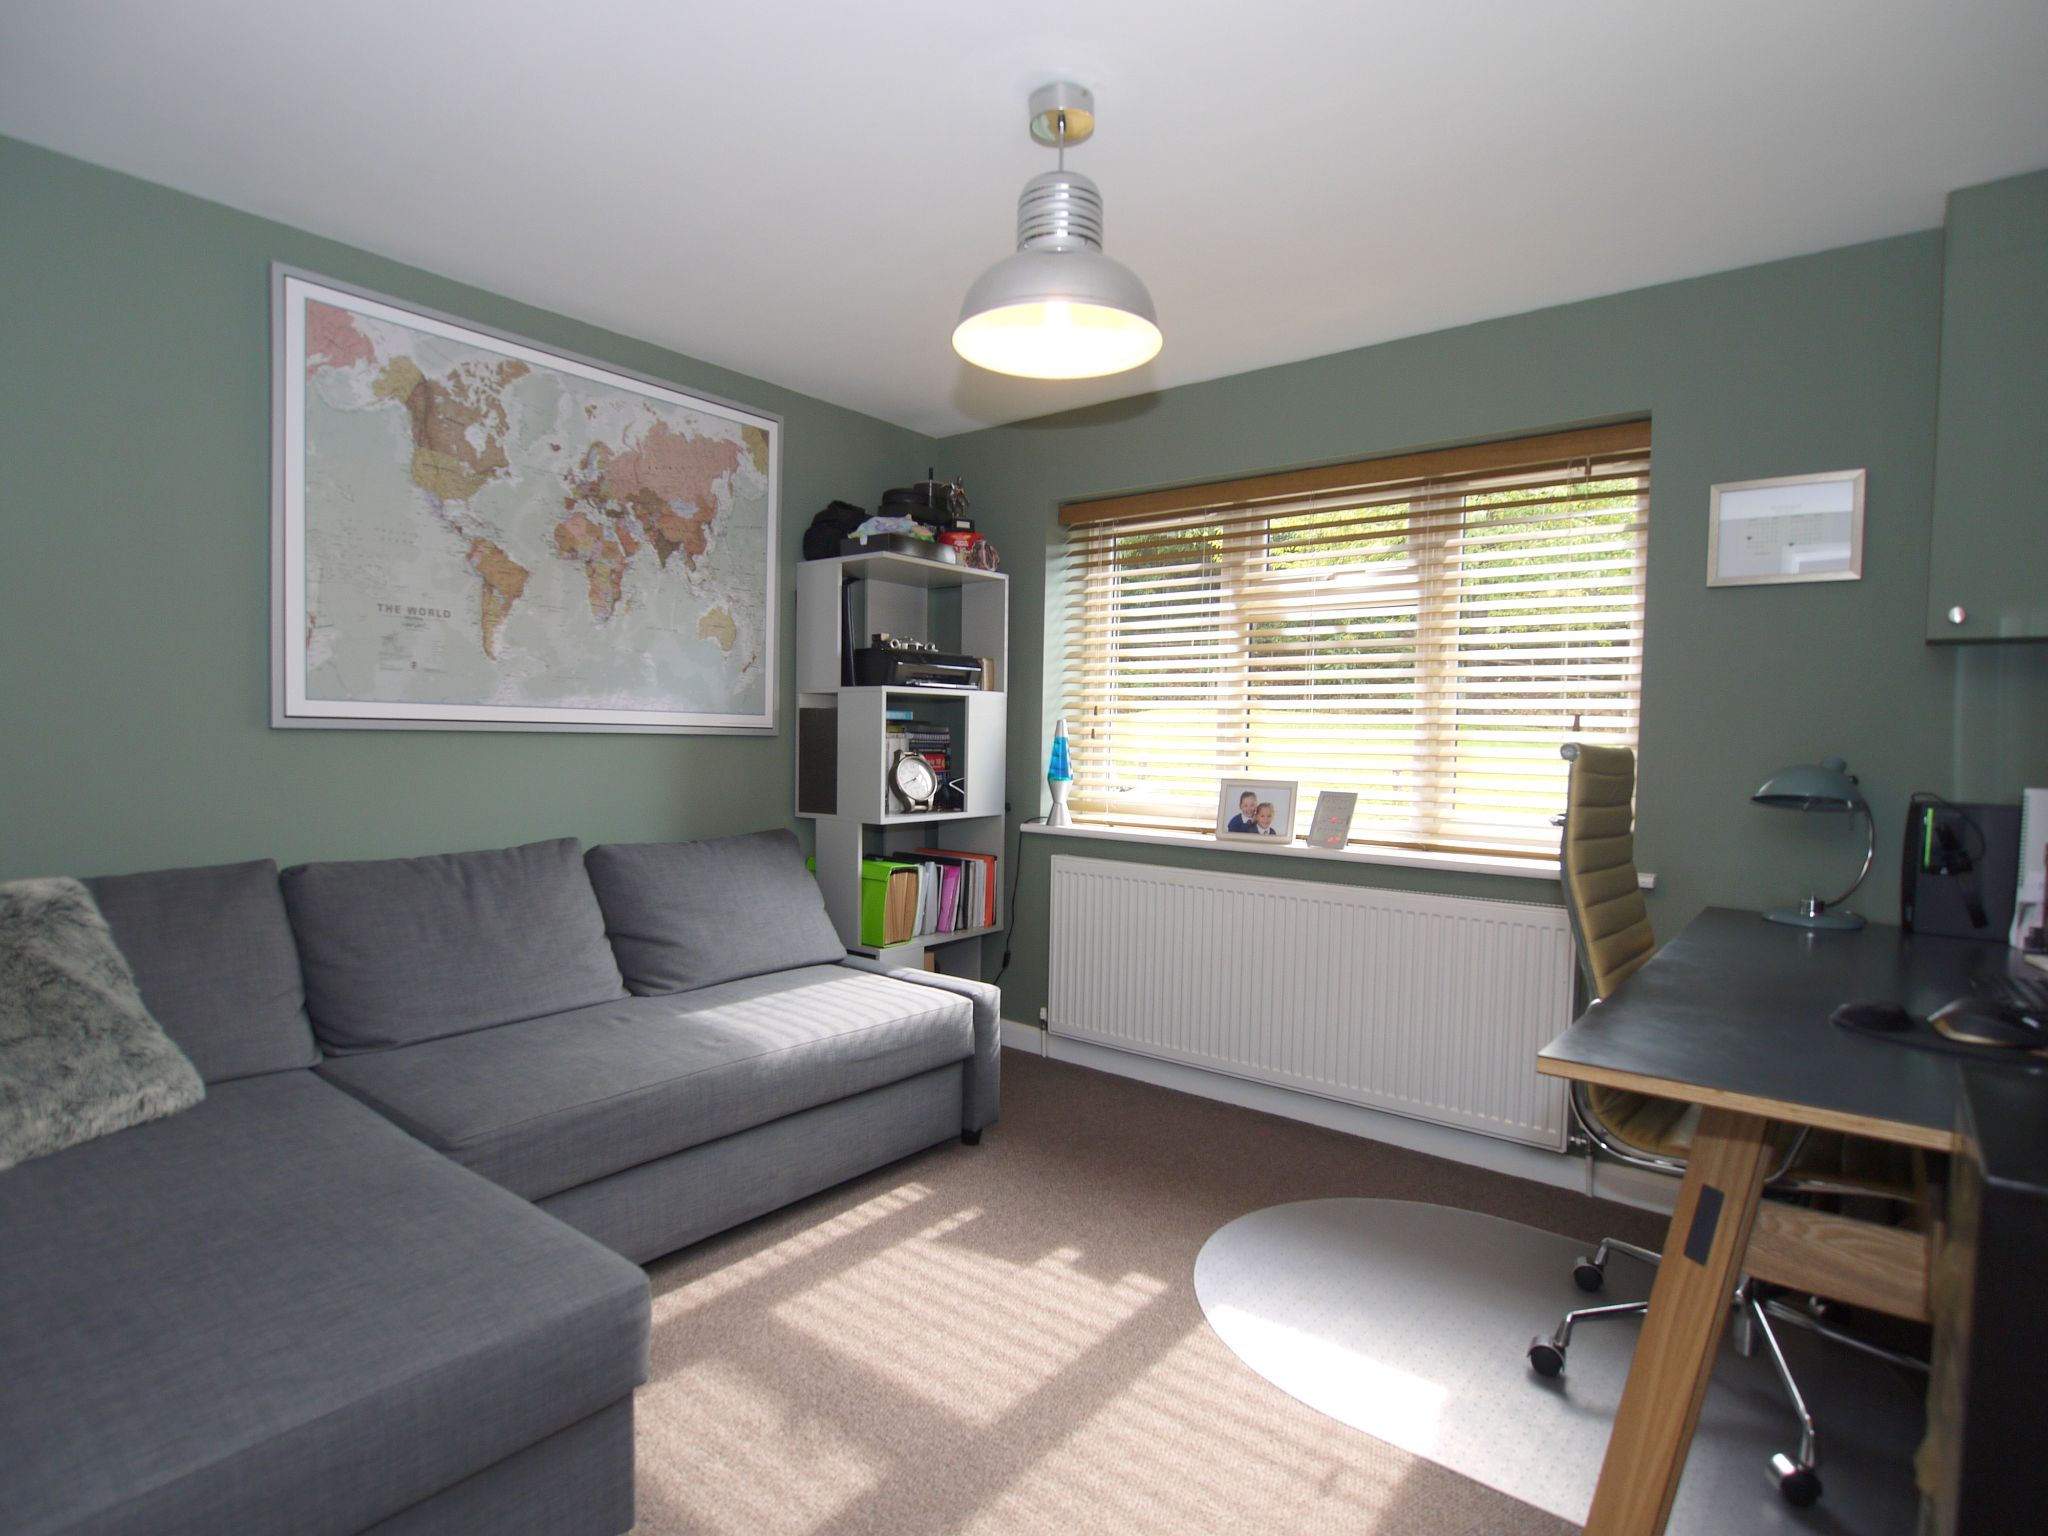 3 bedroom semi-detached house Sold in Sevenoaks - Photograph 4